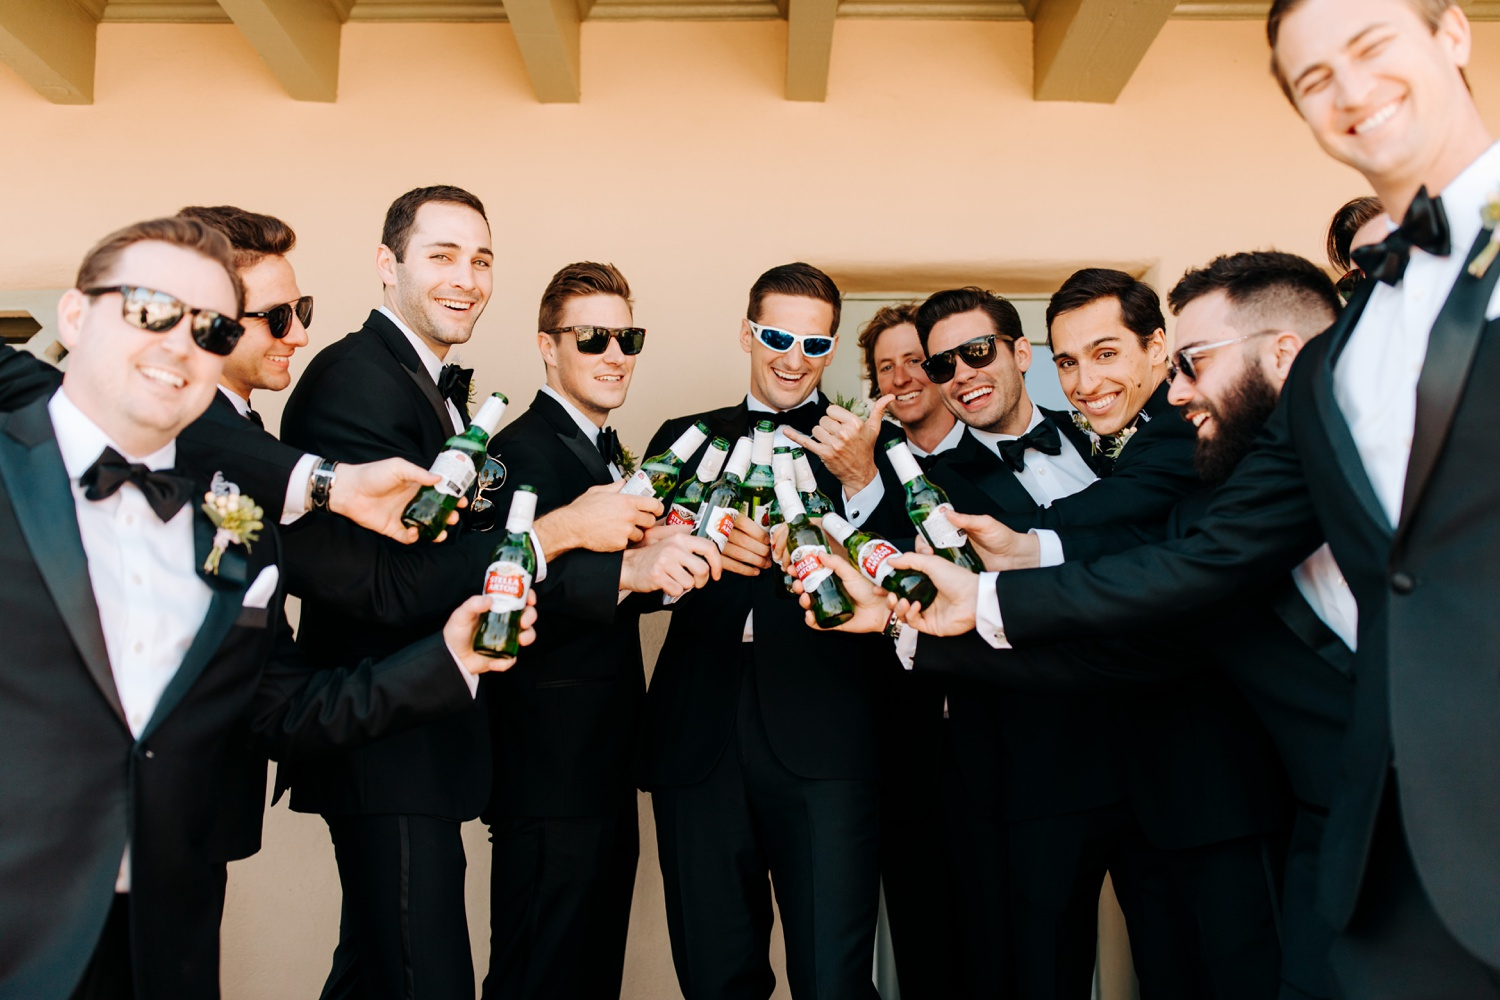 wedding party photos at O'Donnell House Palm Springs